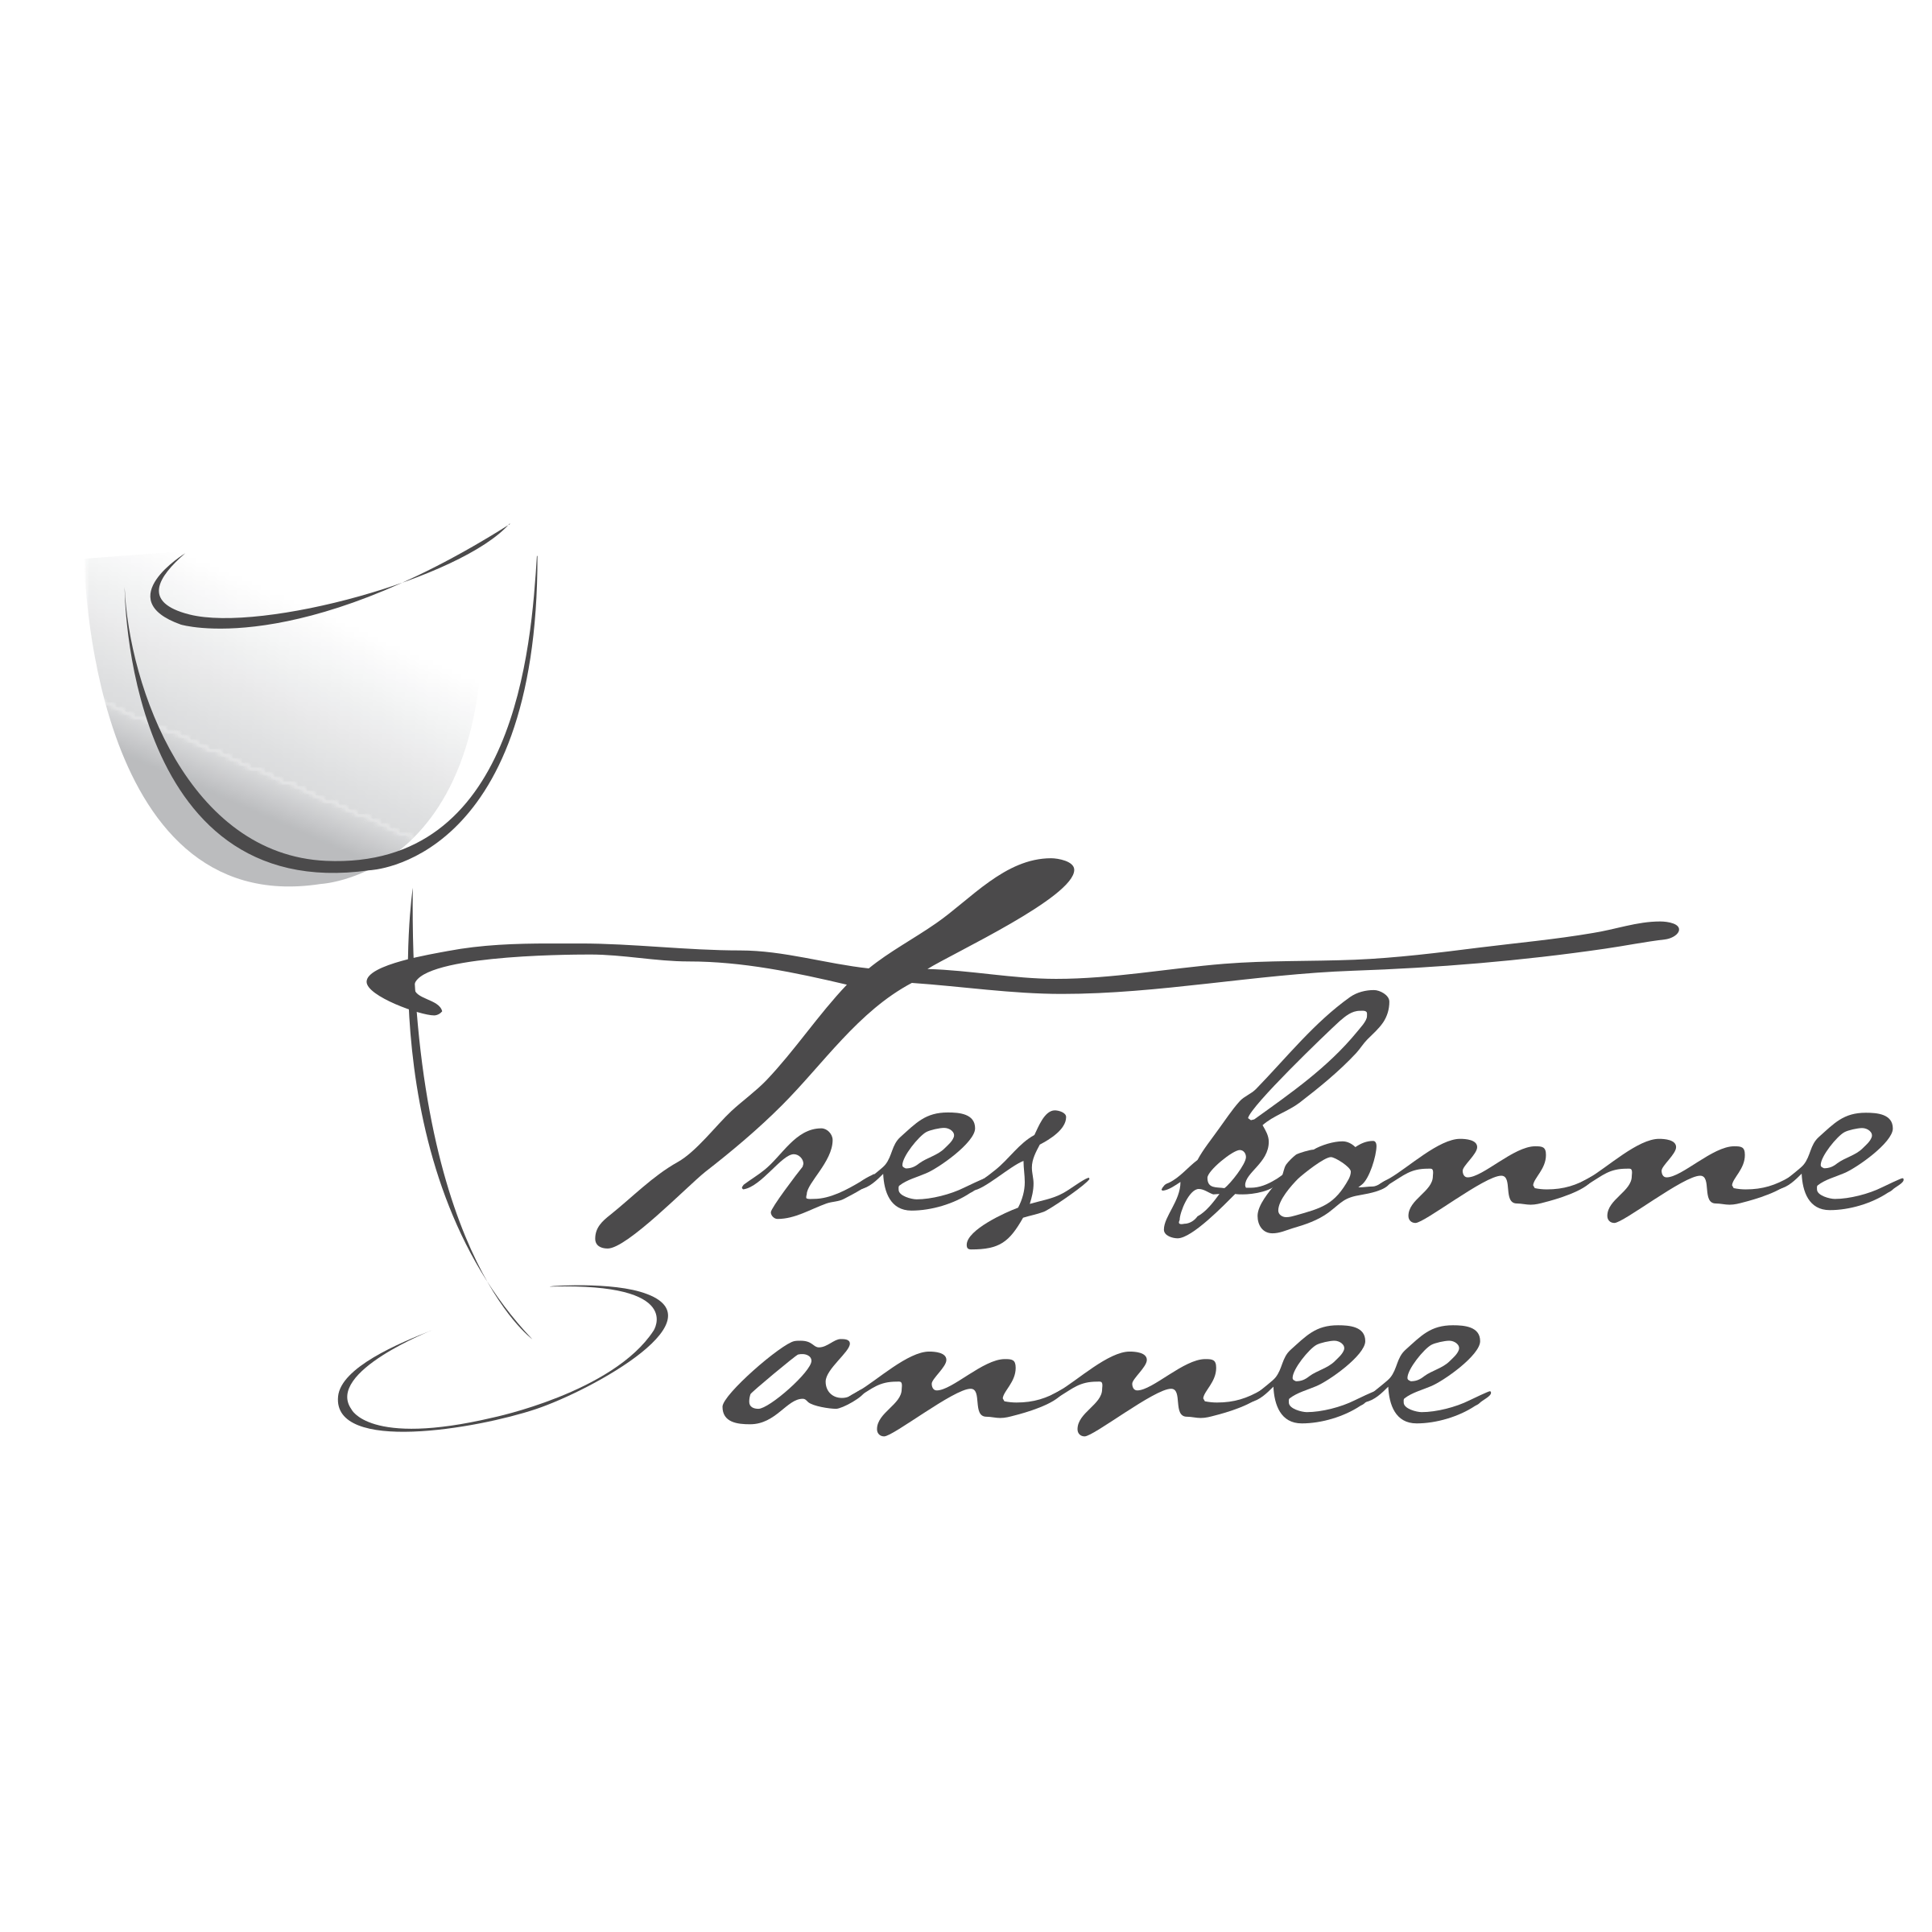 E transparent calligraphy. Tre s bonne anne